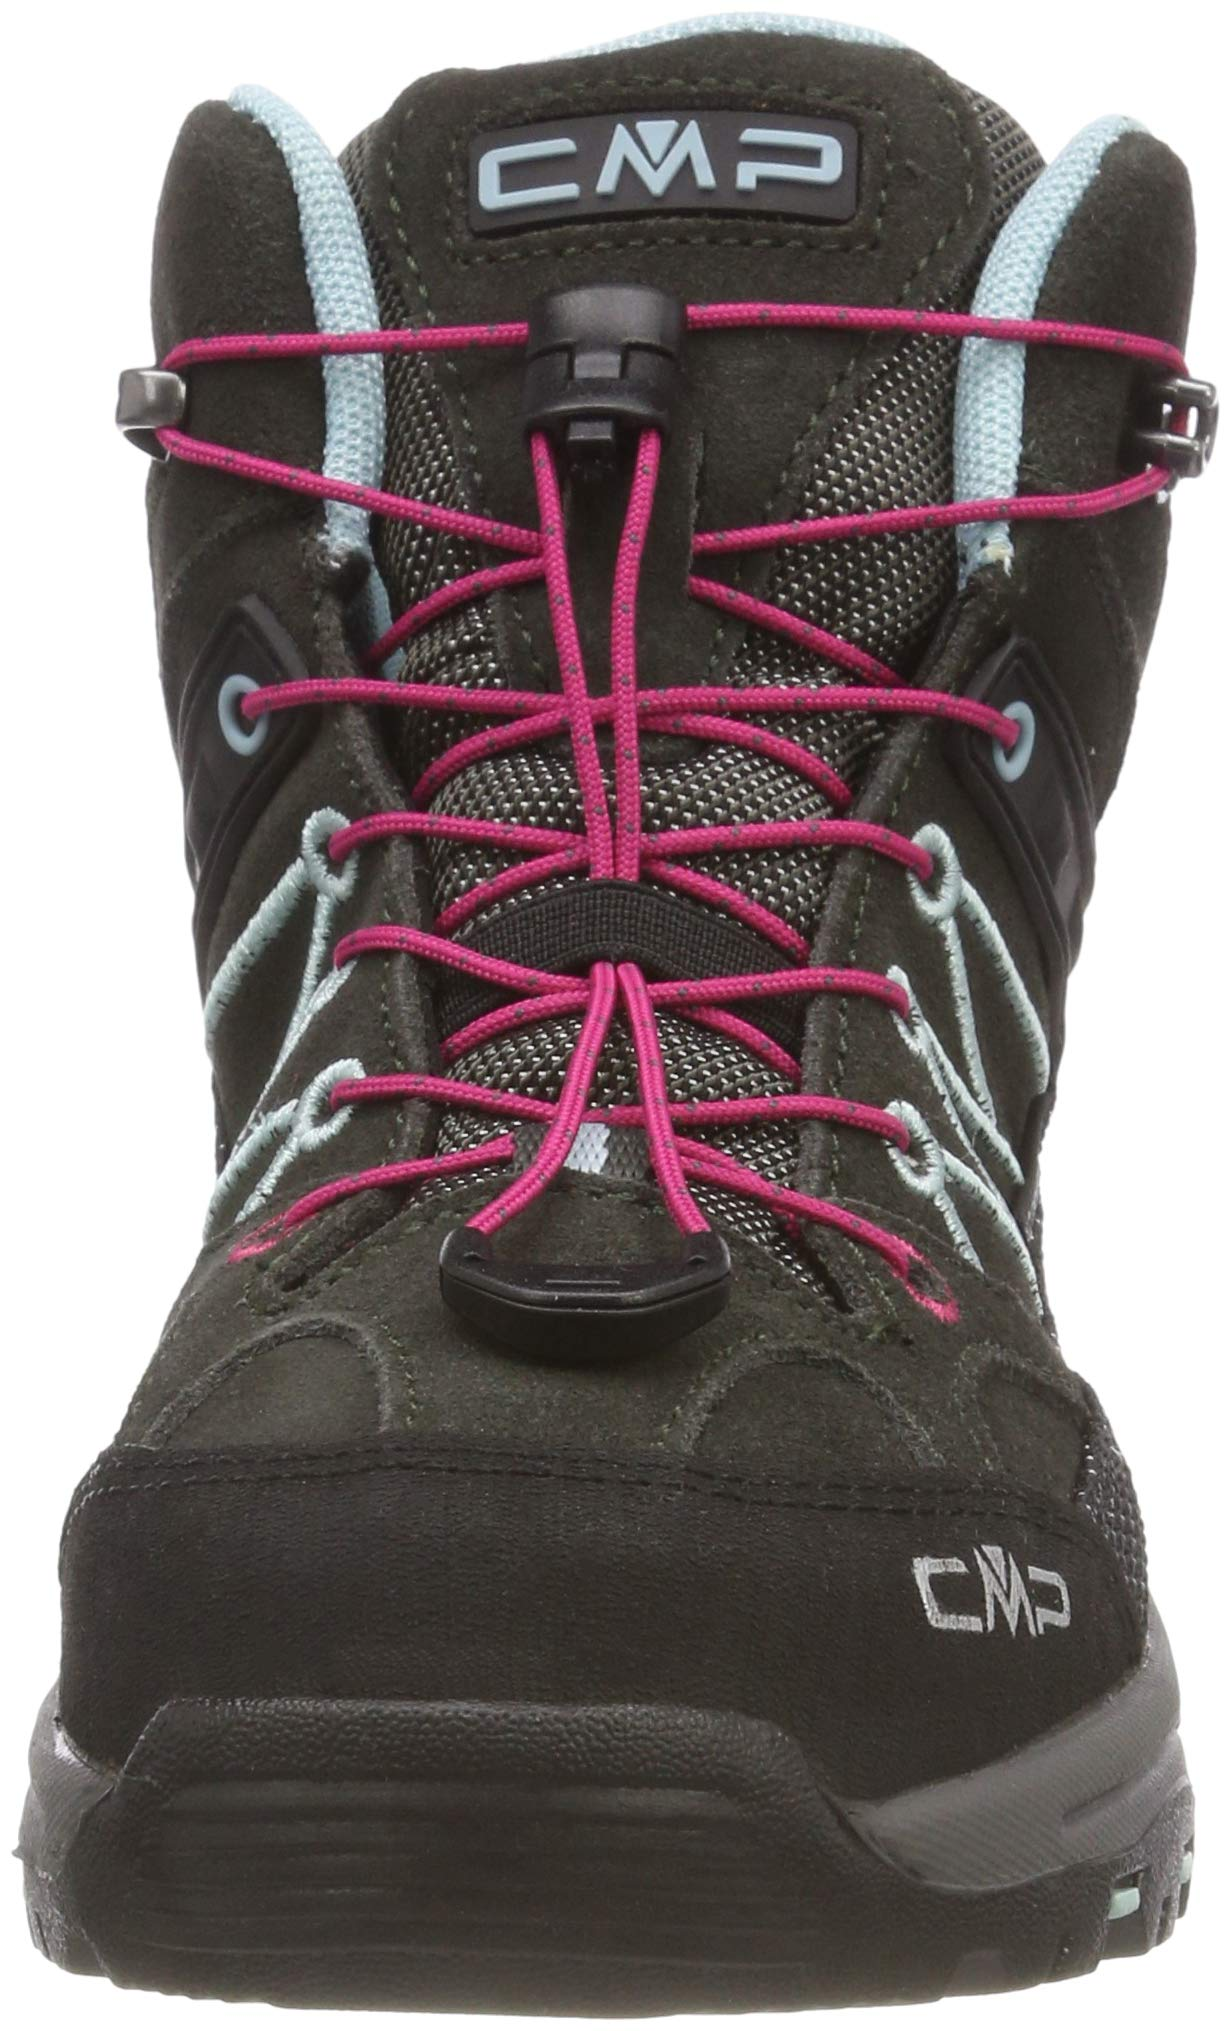 2590bff7cf61 CMP Unisex Kid's Rigel High Rise Hiking Boots - UKsportsOutdoors